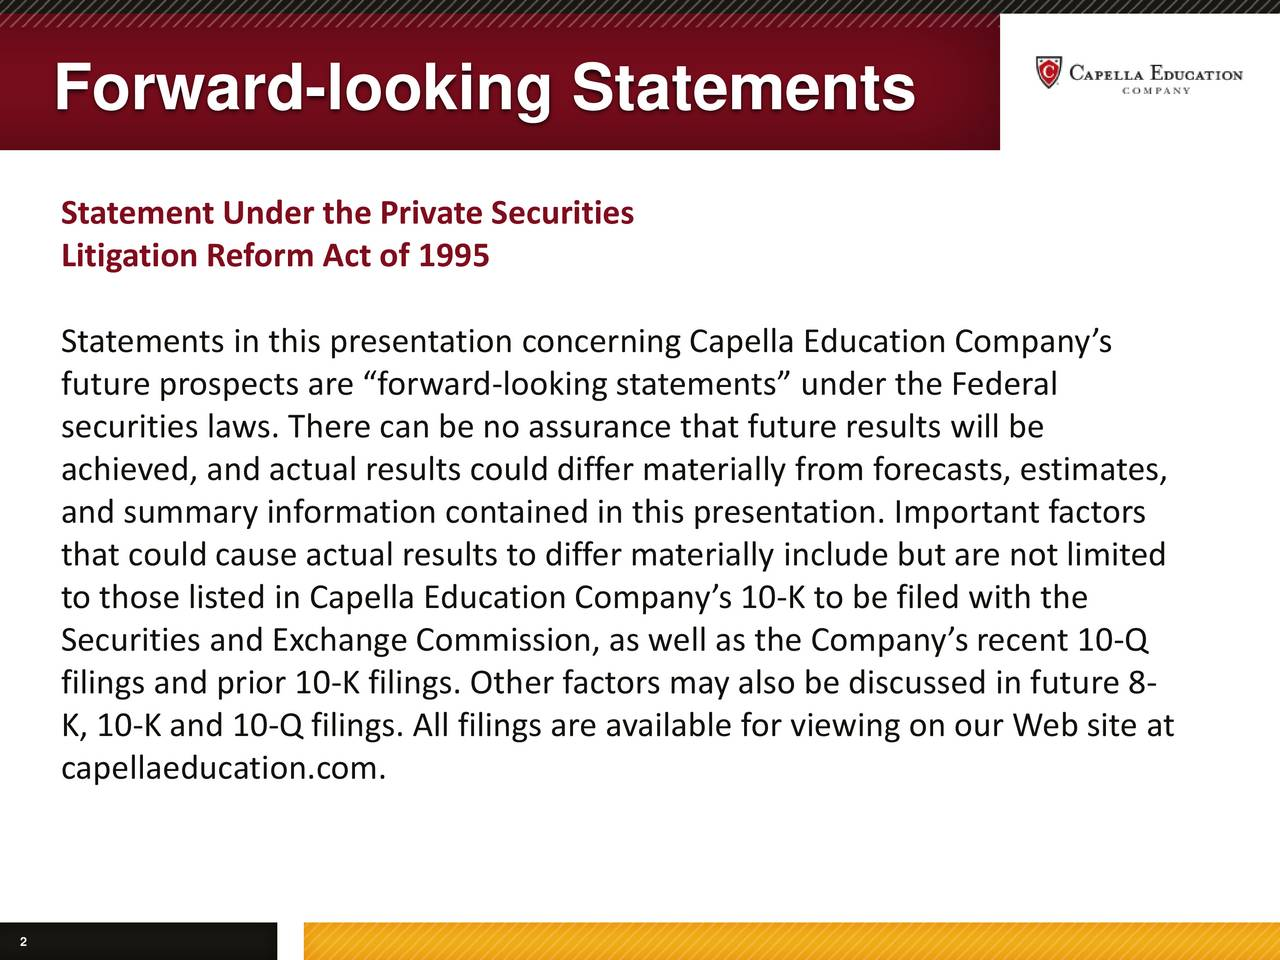 Statement Under the Private Securities Litigation Reform Act of 1995 Statements in this presentation concerning Capella Education Companys future prospects are forward-looking statements under the Federal securities laws. There can be no assurance that future results will be achieved, and actual results could differ materially from forecasts, estimates, and summary information contained in this presentation. Important factors that could cause actual results to differ materially include but are not limited to those listed in Capella Education Companys 10-K to be filed with the Securities and Exchange Commission, as well as the Companys recent 10-Q filings and prior 10-K filings. Other factors may also be discussed in future 8- K, 10-K and 10-Q filings. All filings are available for viewing on our Web site at capellaeducation.com.